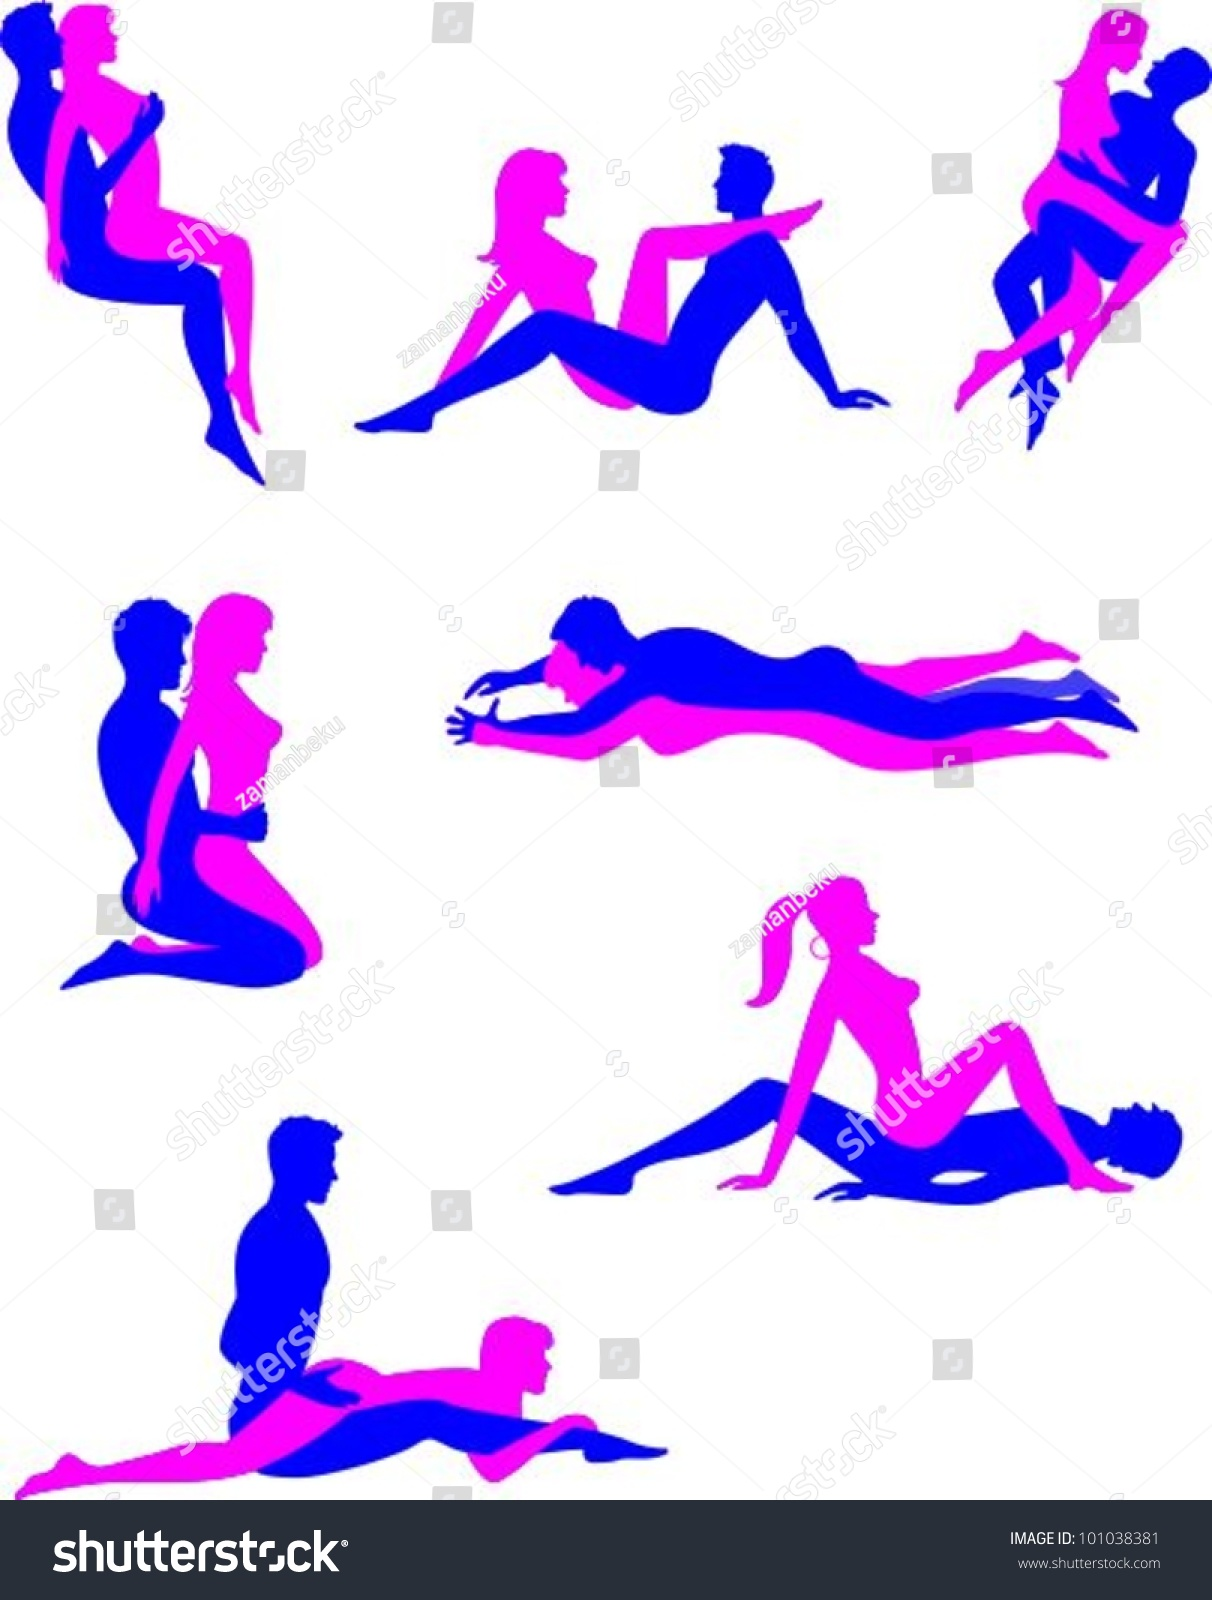 Pictures Of Sex Poses 11